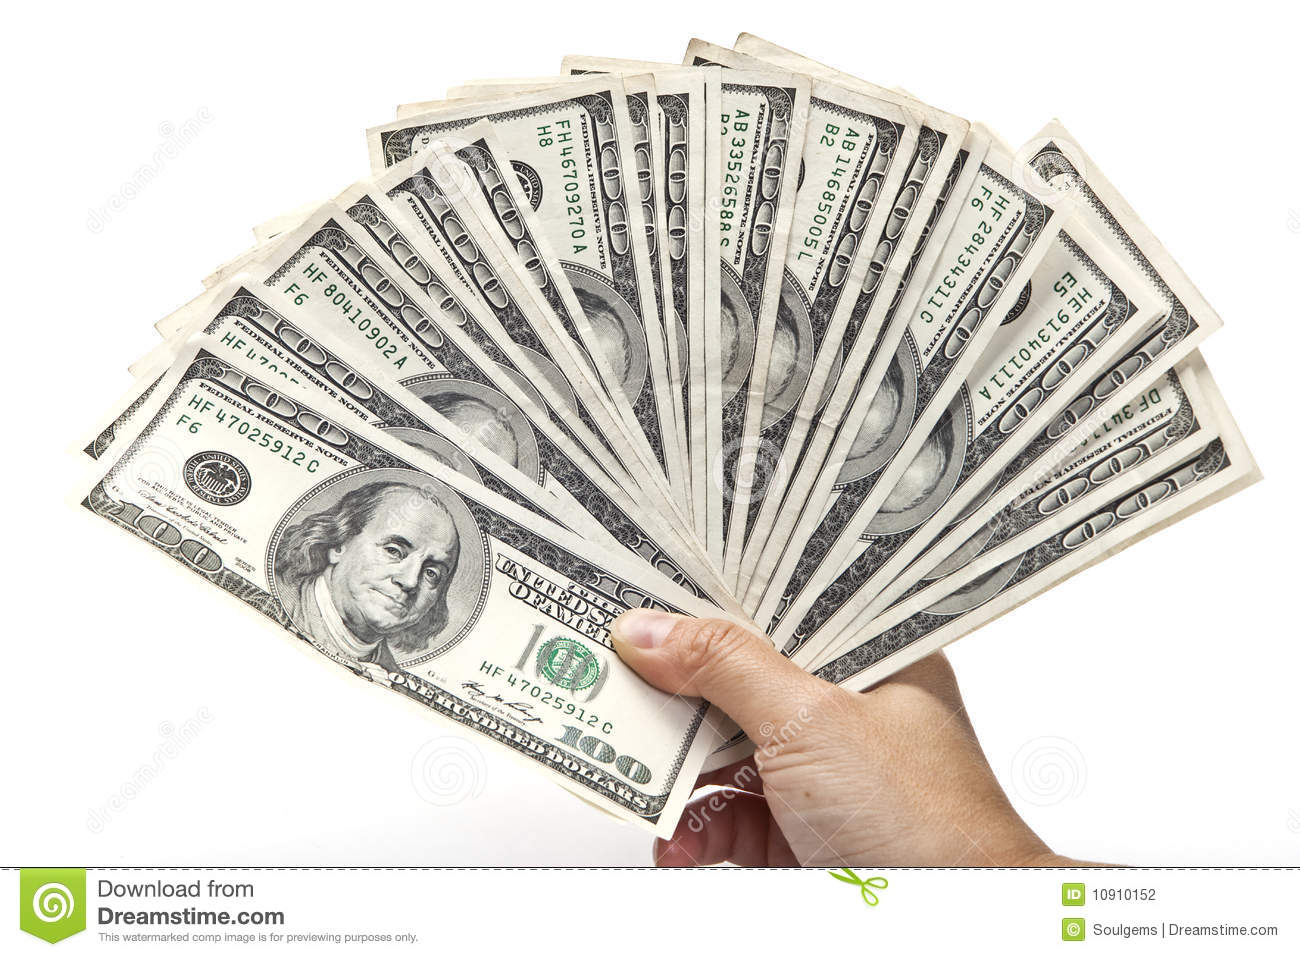 fan of hundred dollar bills stock photo - image of abundance, green